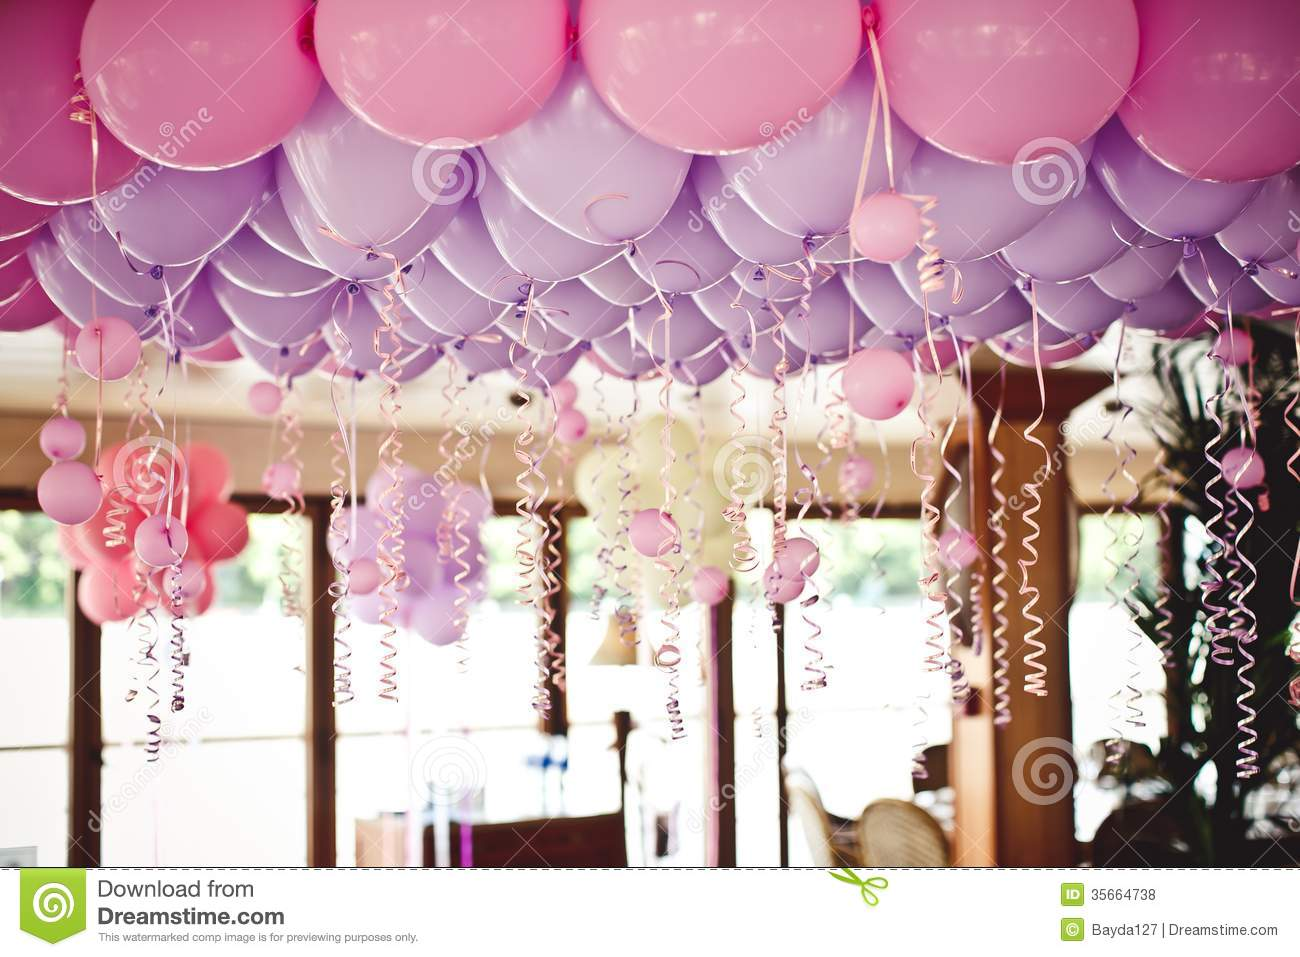 Balloons Under The Ceiling On Wedding Party Royalty Free